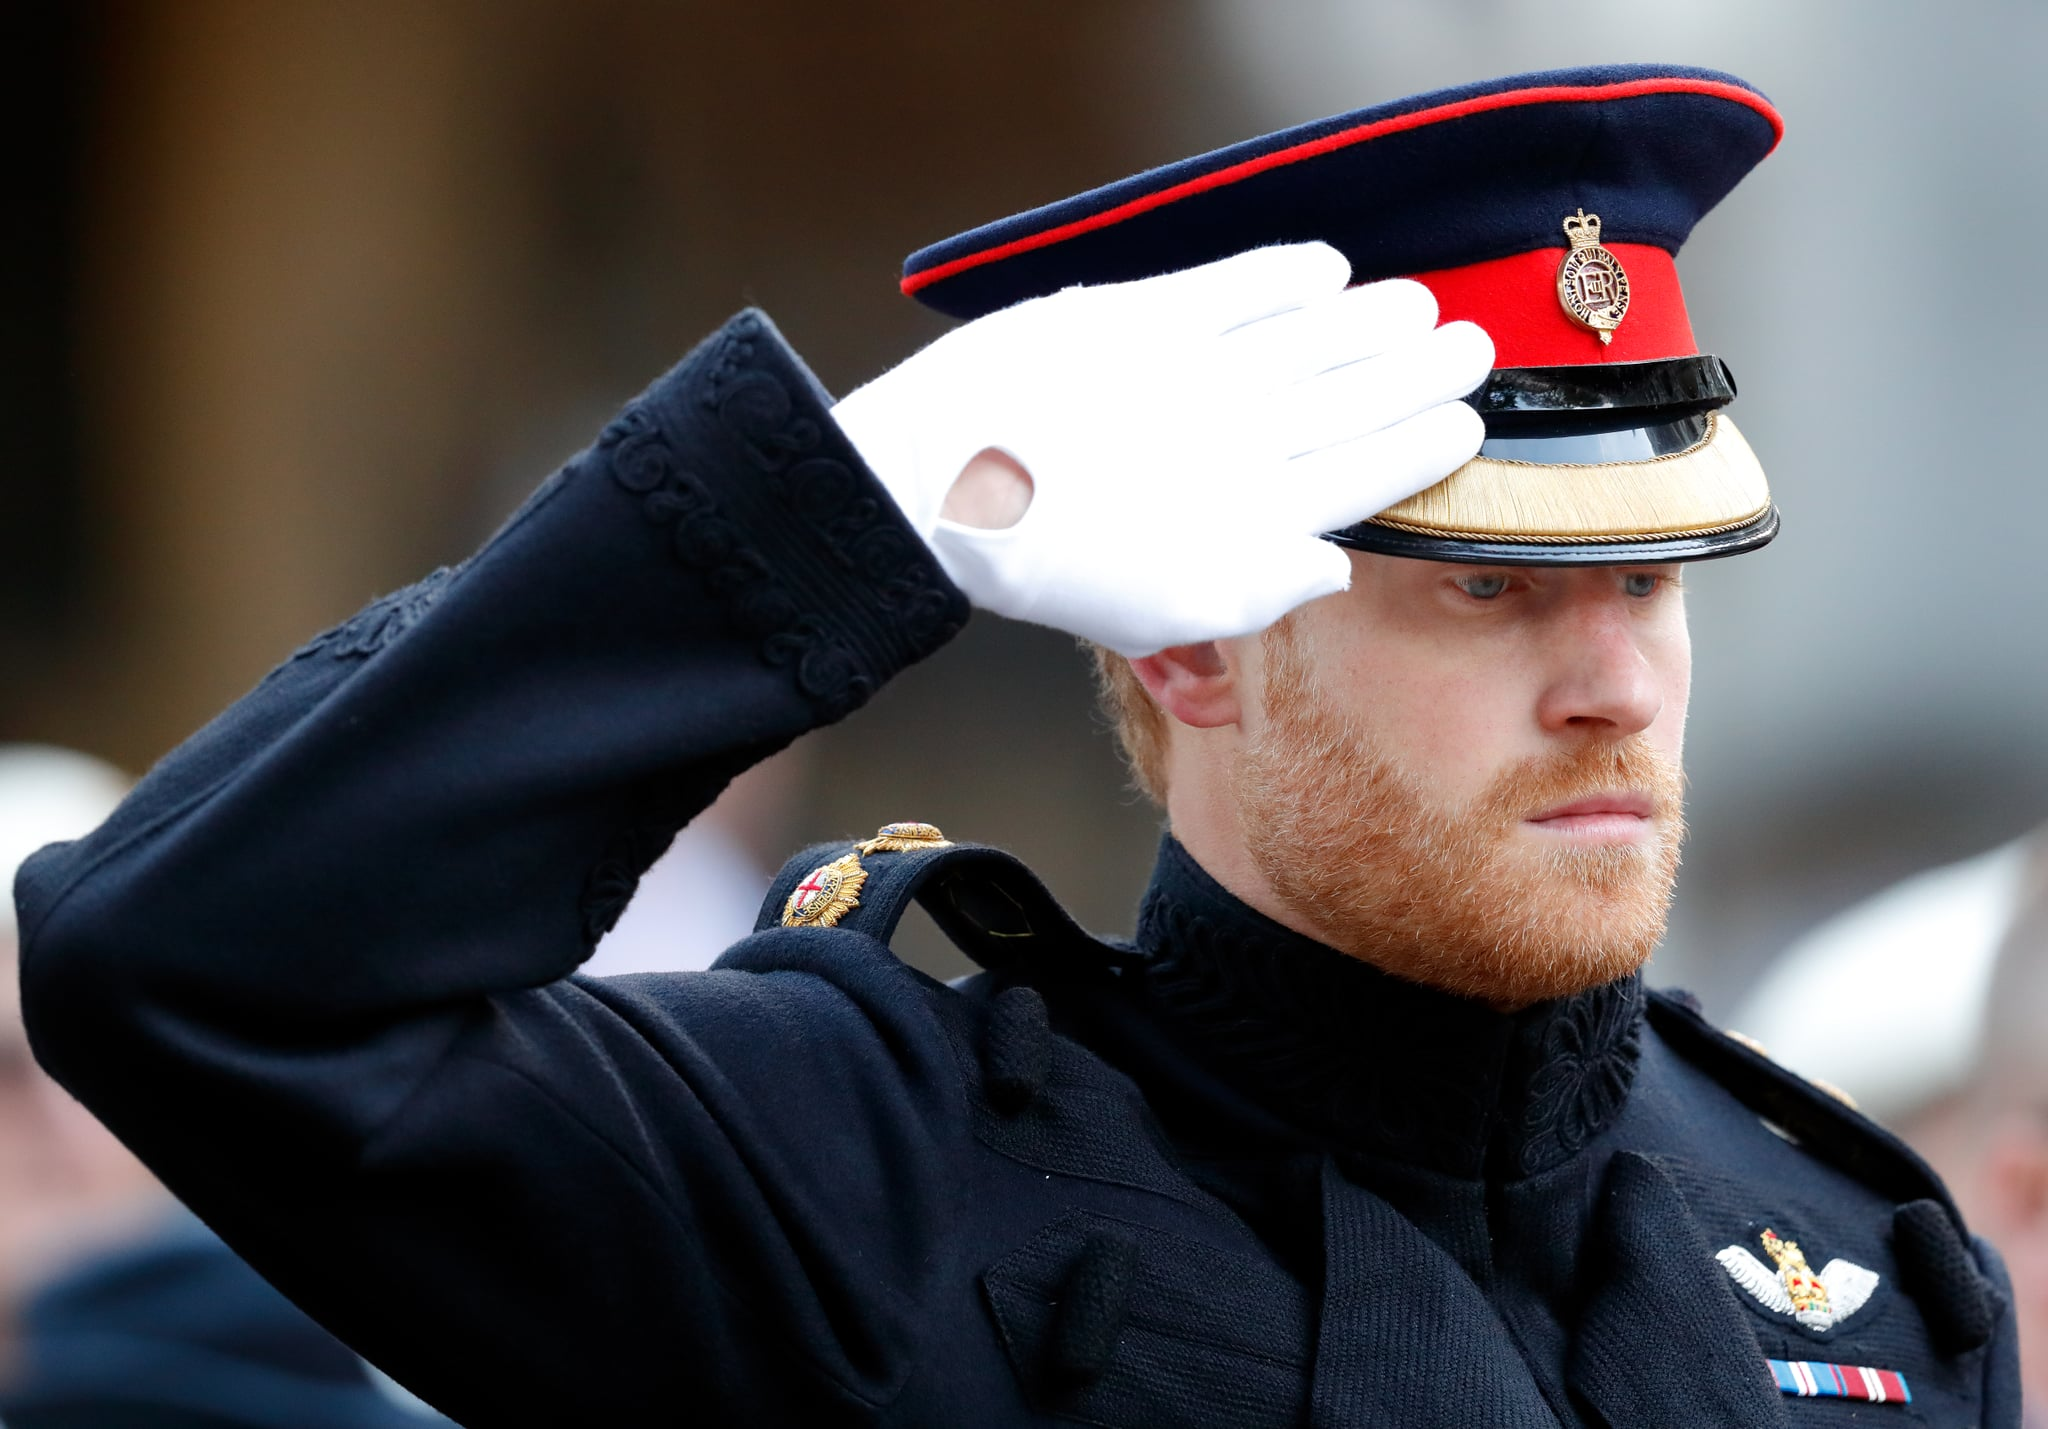 LONDON, UNITED KINGDOM - NOVEMBER 09: (EMBARGOED FOR PUBLICATION IN UK NEWSPAPERS UNTIL 48 HOURS AFTER CREATE DATE AND TIME) Prince Harry salutes as he visits the Field of Remembrance at Westminster Abbey on November 9, 2017 in London, England. The first Field of Remembrance was held in the grounds of Westminster Abbey in November 1928 when only two Remembrance Tribute Crosses were planted, but has now grown to approximately 70,000 crosses planted. (Photo by Max Mumby/Indigo/Getty Images)